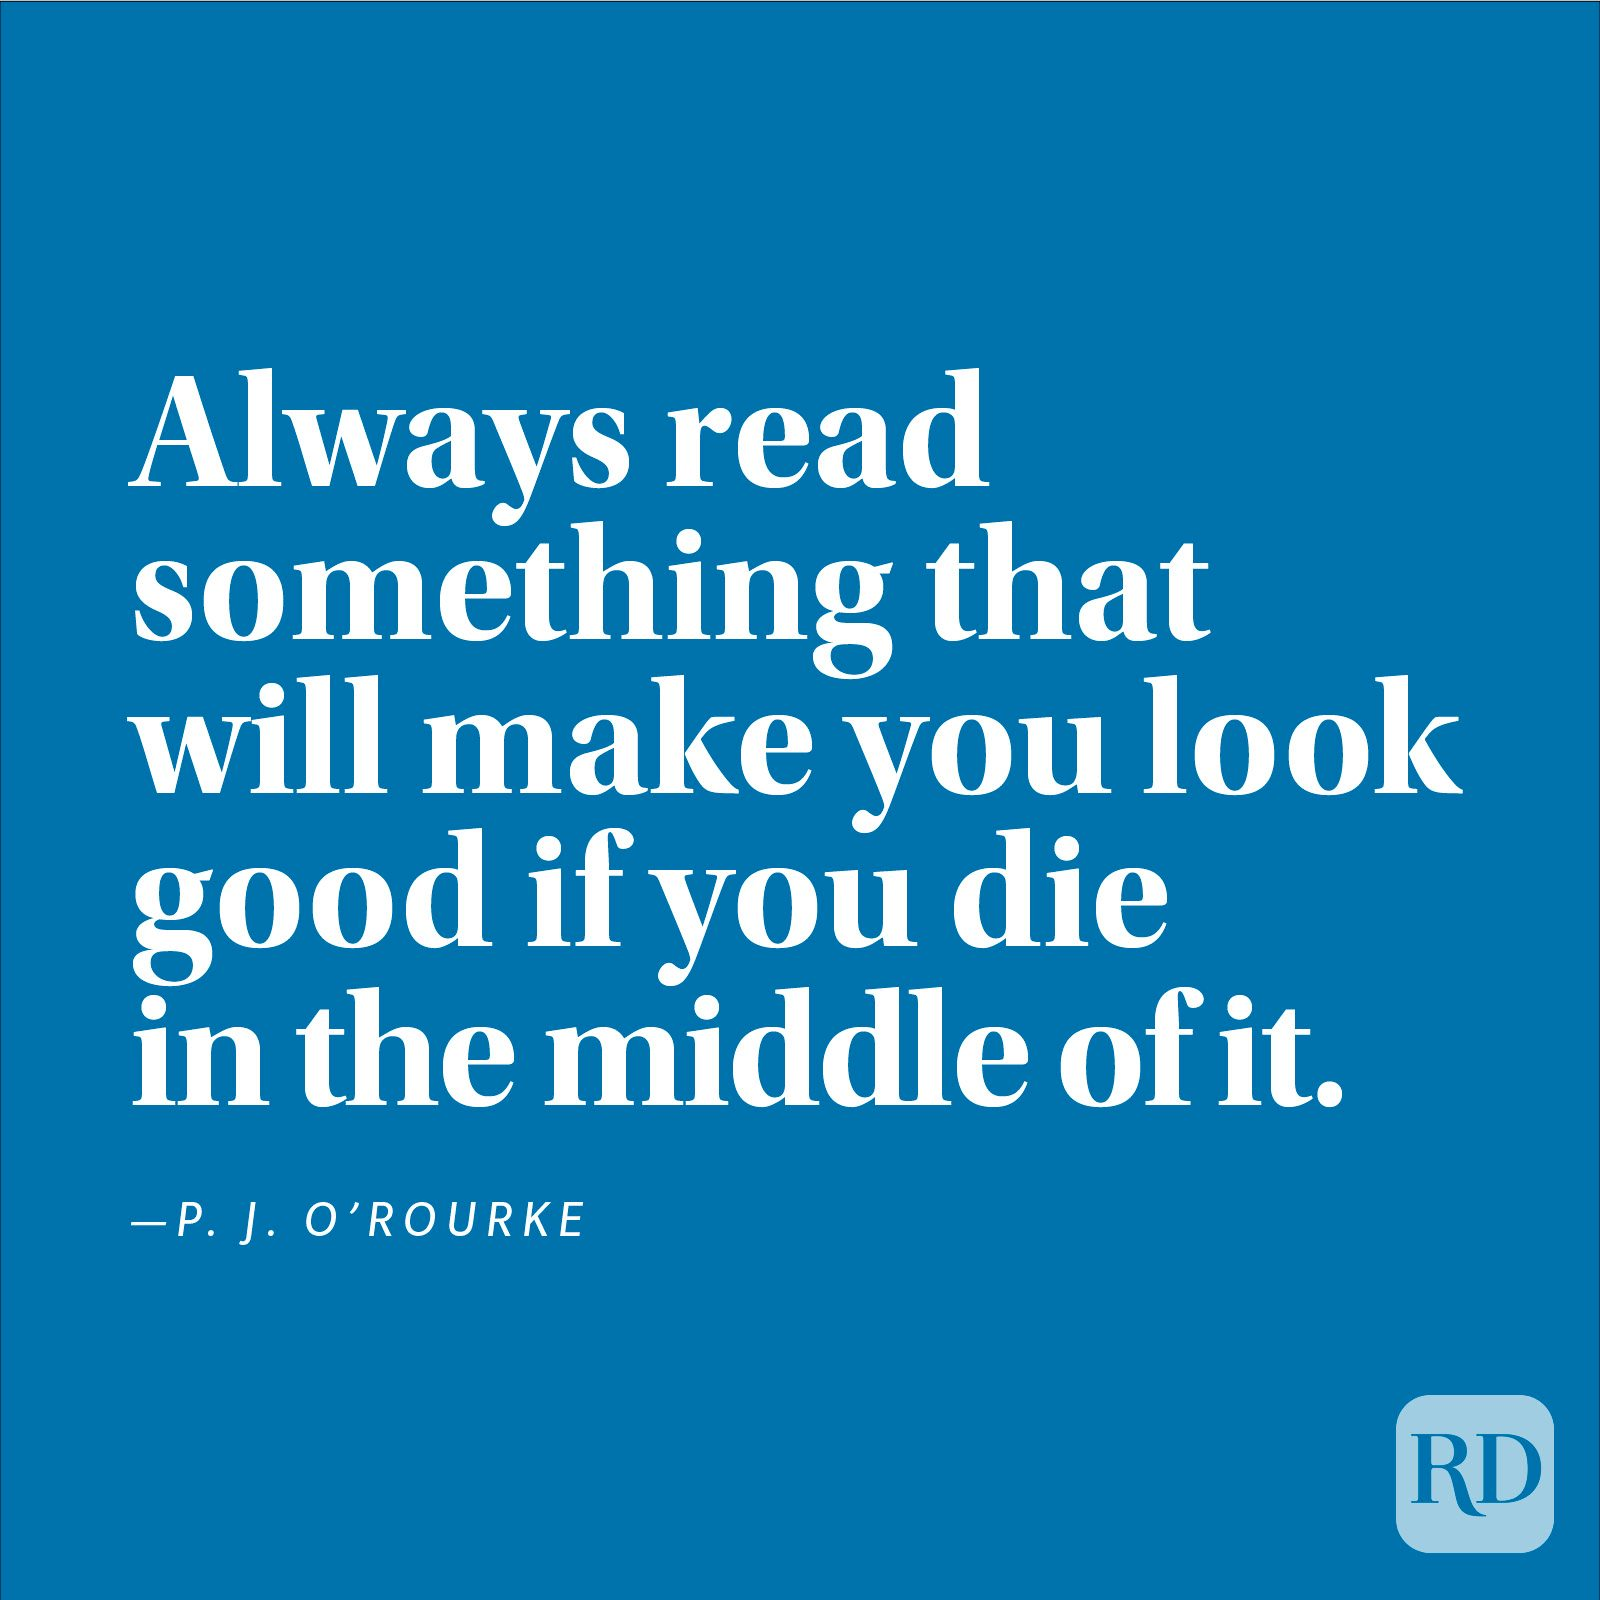 """Always read something that will make you look good if you die in the middle of it."" —P. J. O'Rourke"